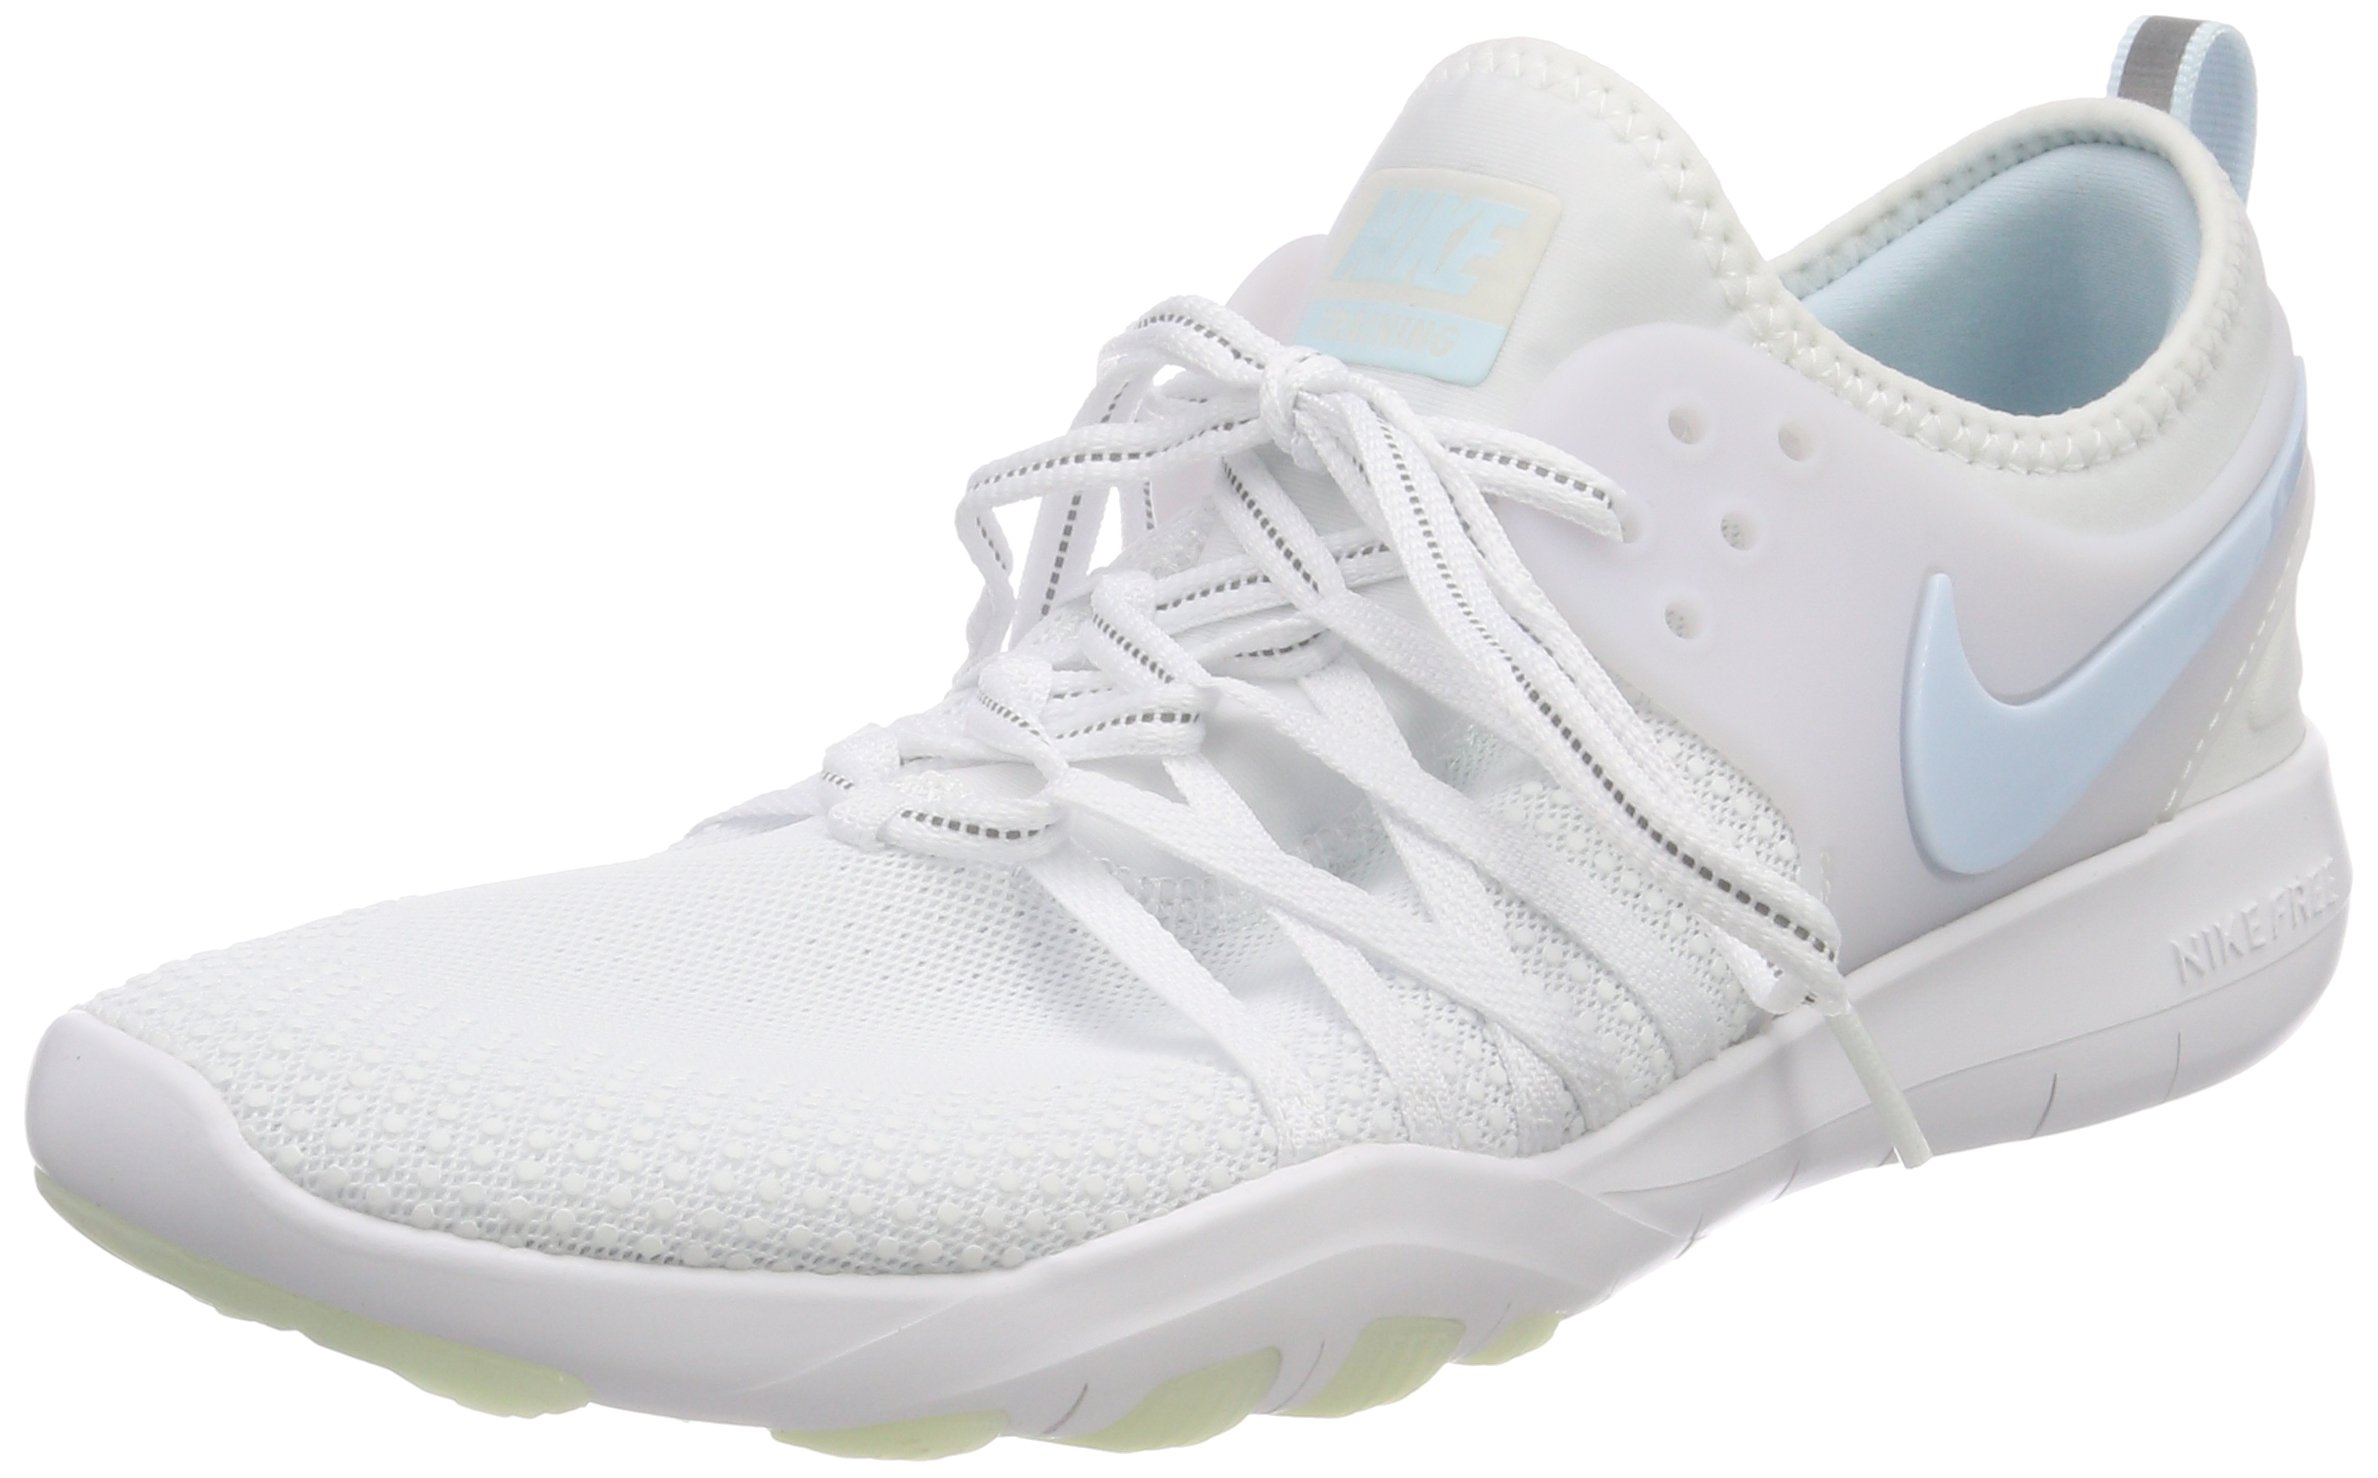 NIKE Women's Free TR 7 Training Shoes (9, White/Grey/Blue-M) by NIKE (Image #1)